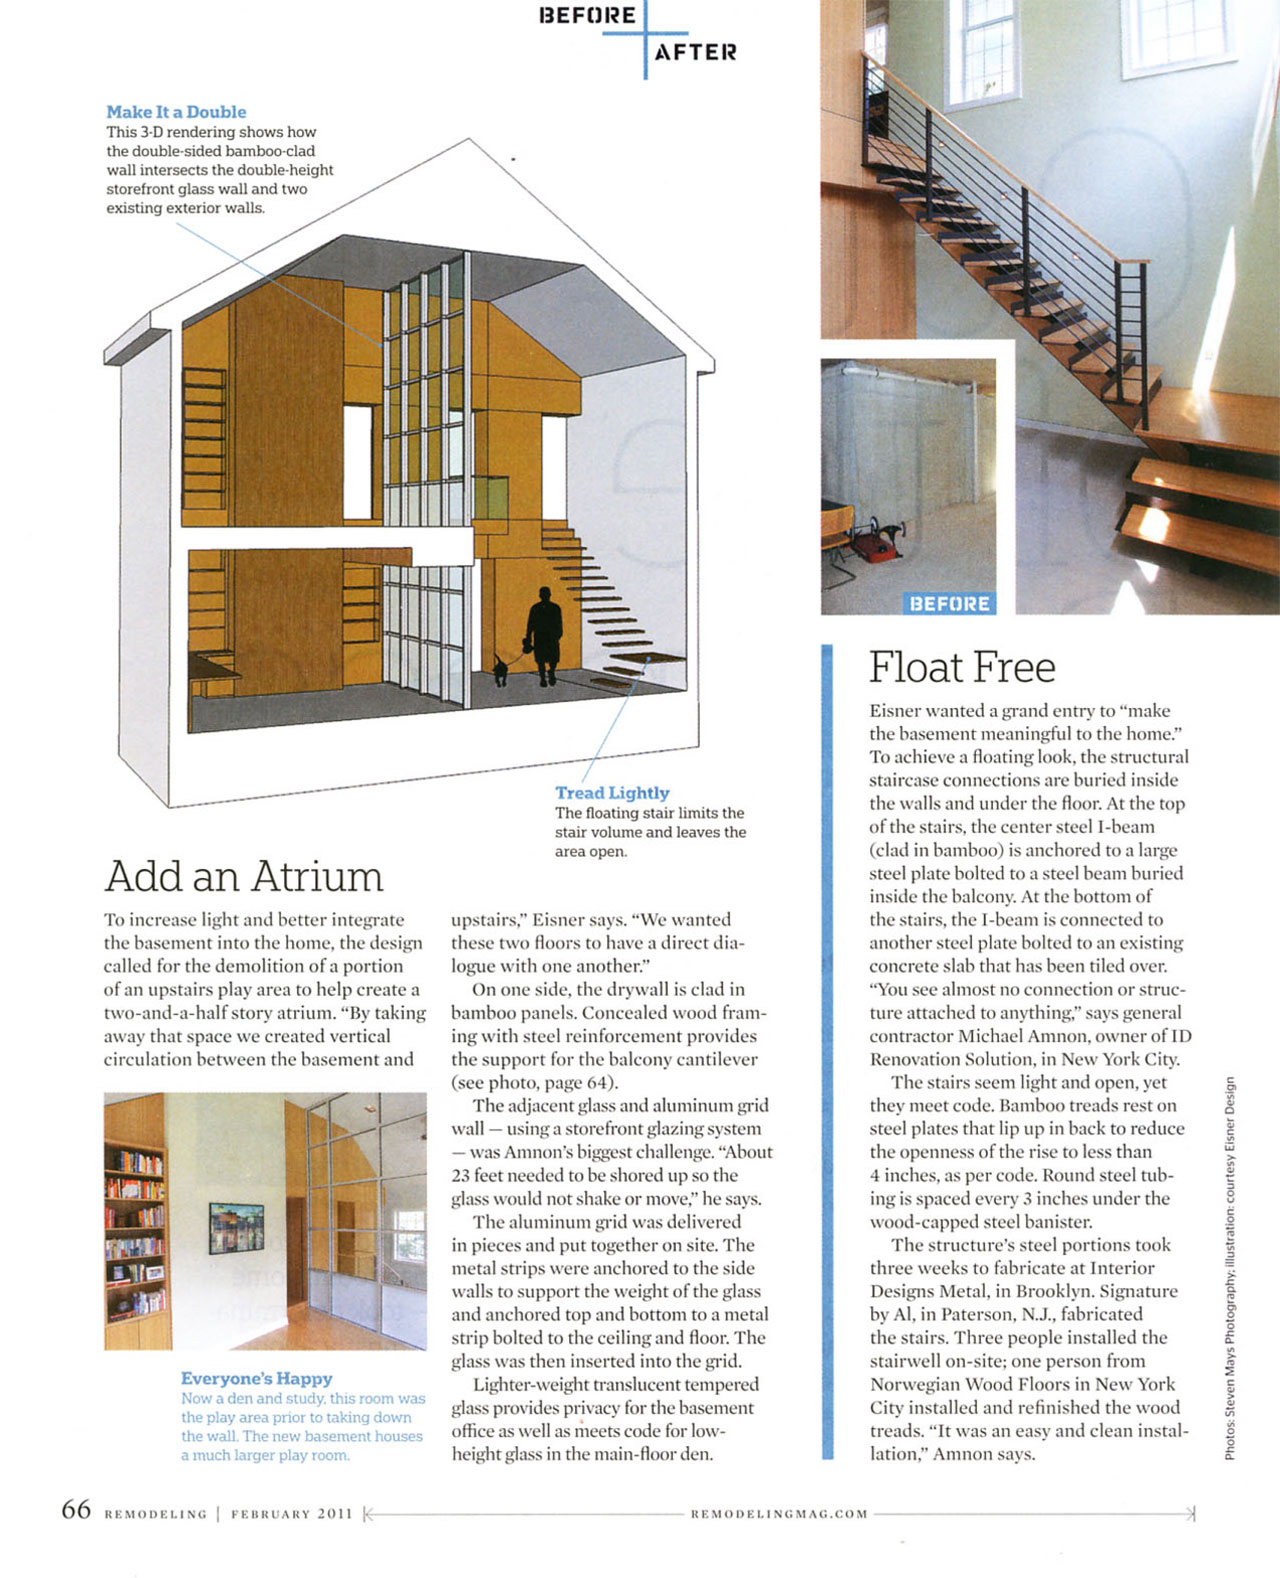 04_News_Out-of-the-Darkness-RemodelingMag2011-04_web_w1280